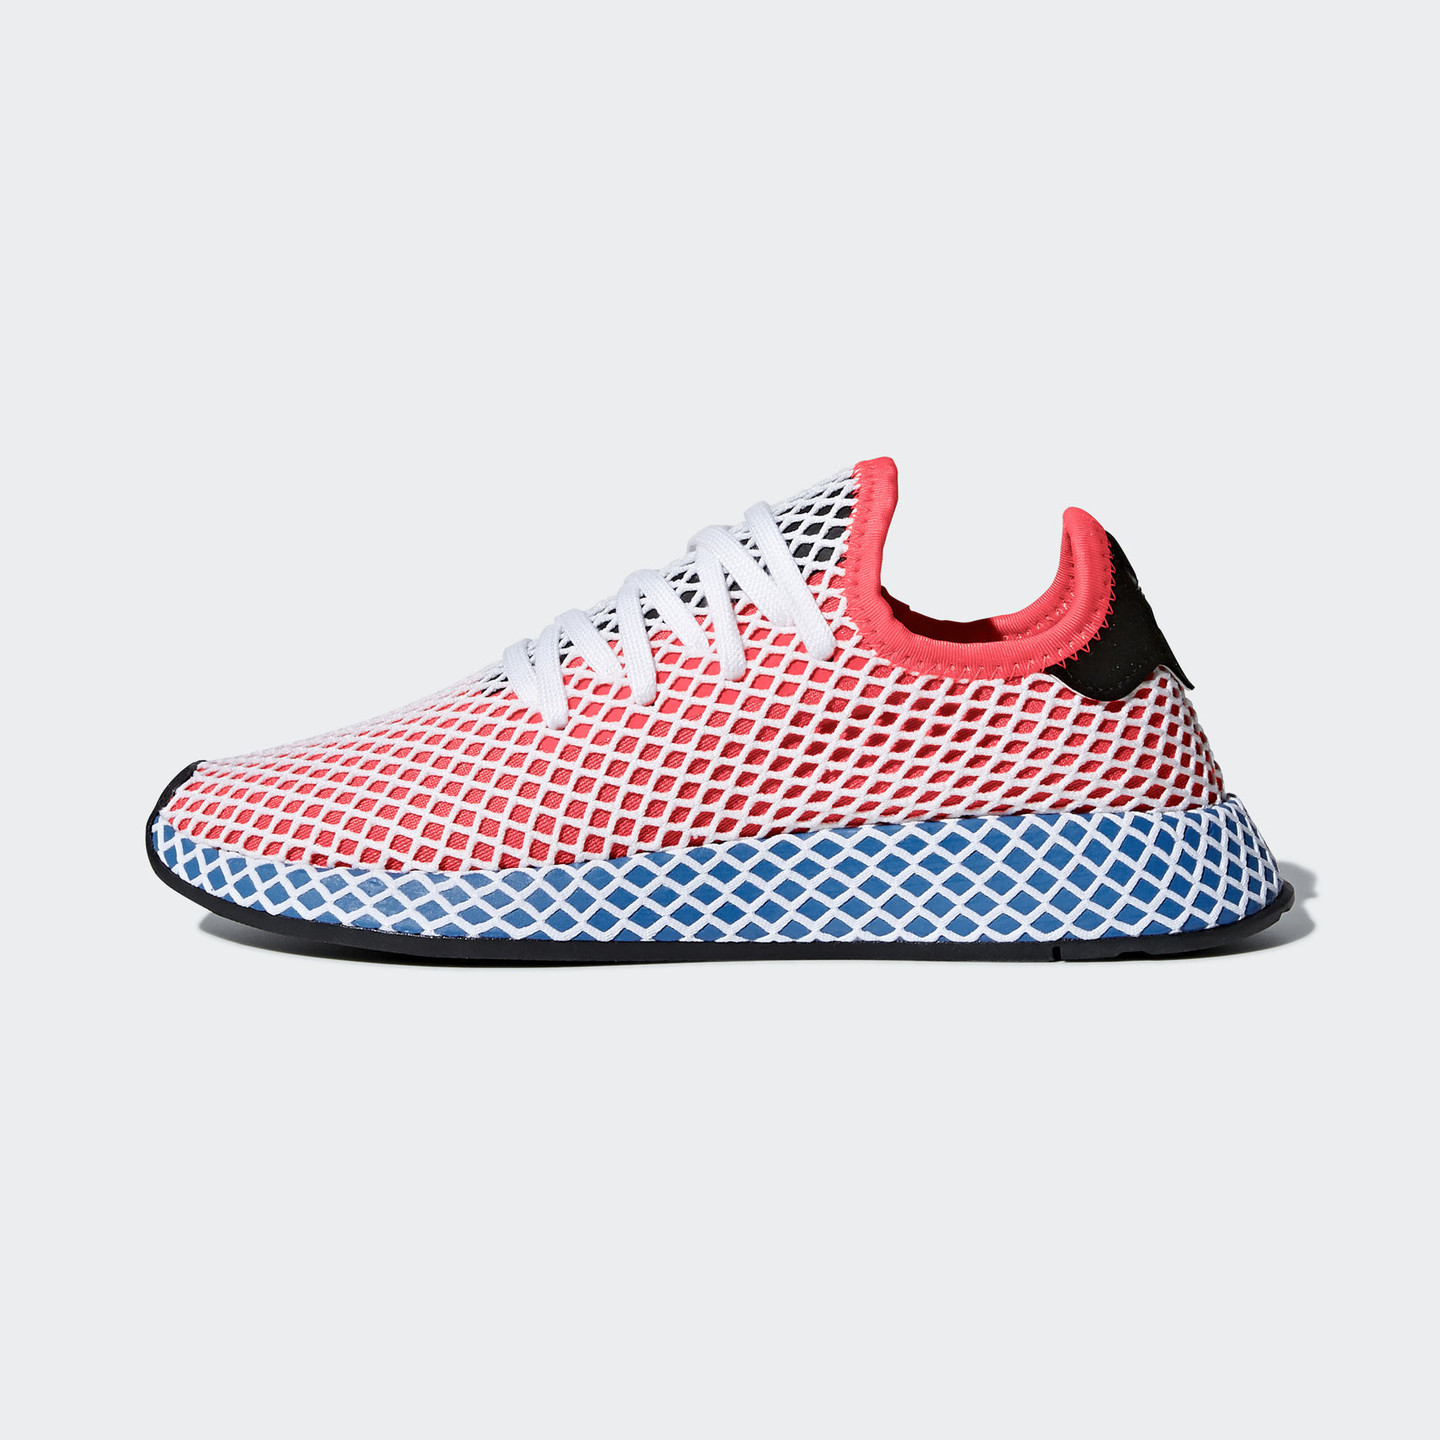 Adidas Deerupt OG Solar Red / Blue Bird / White CQ2624